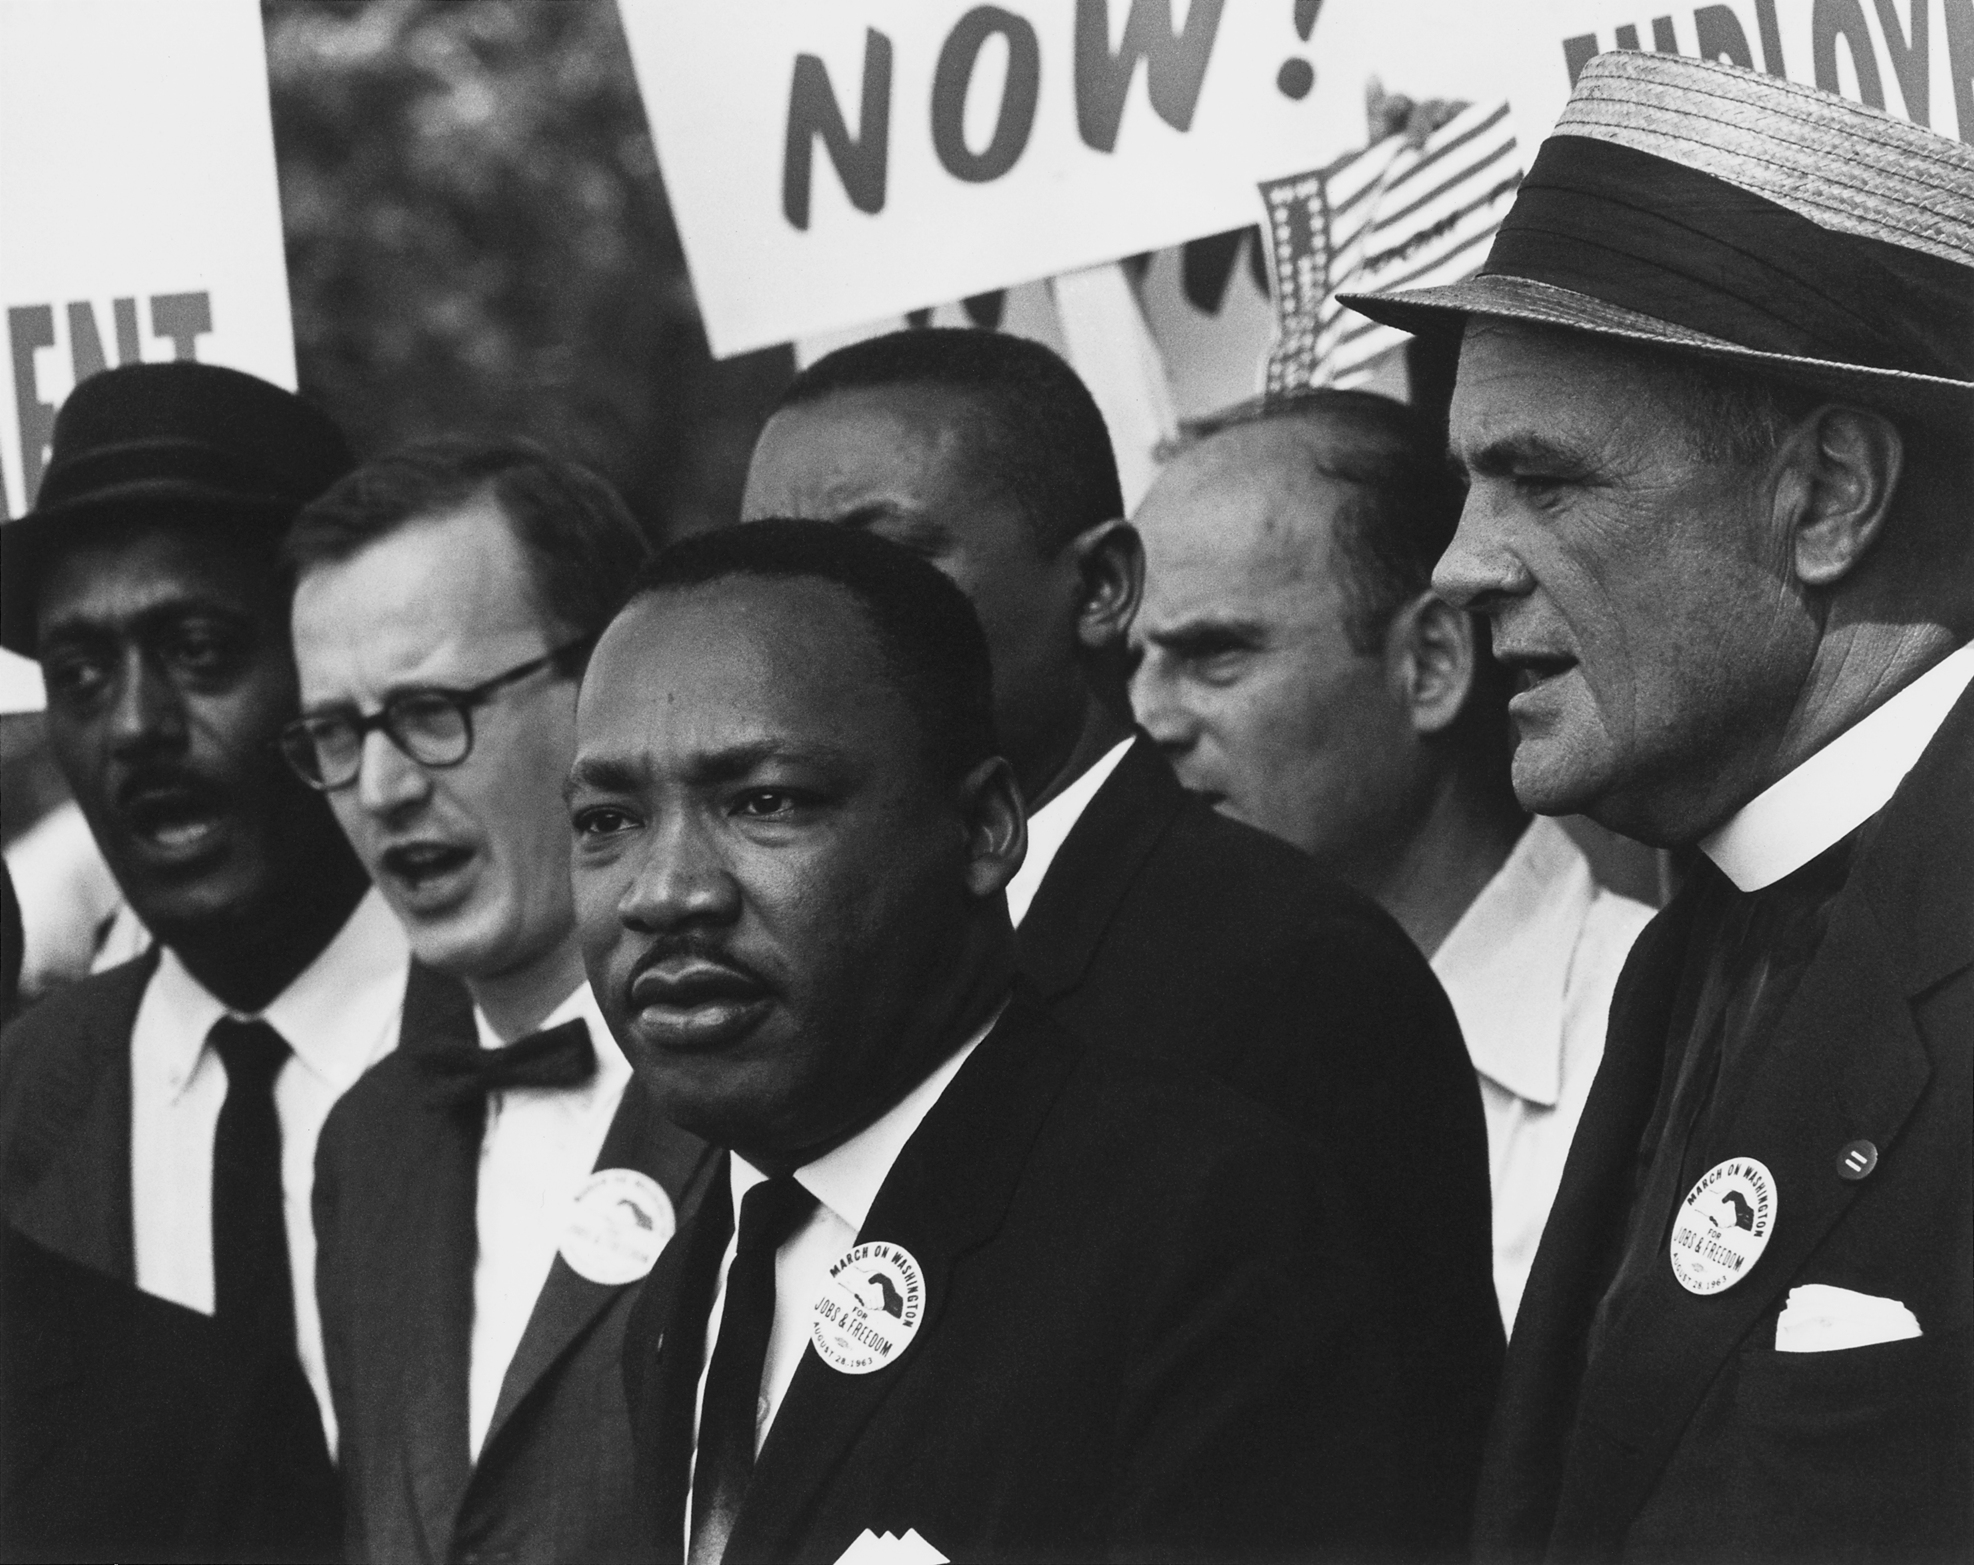 10 Speaking Lessons From Dissecting a Martin Luther King Jr. Speech